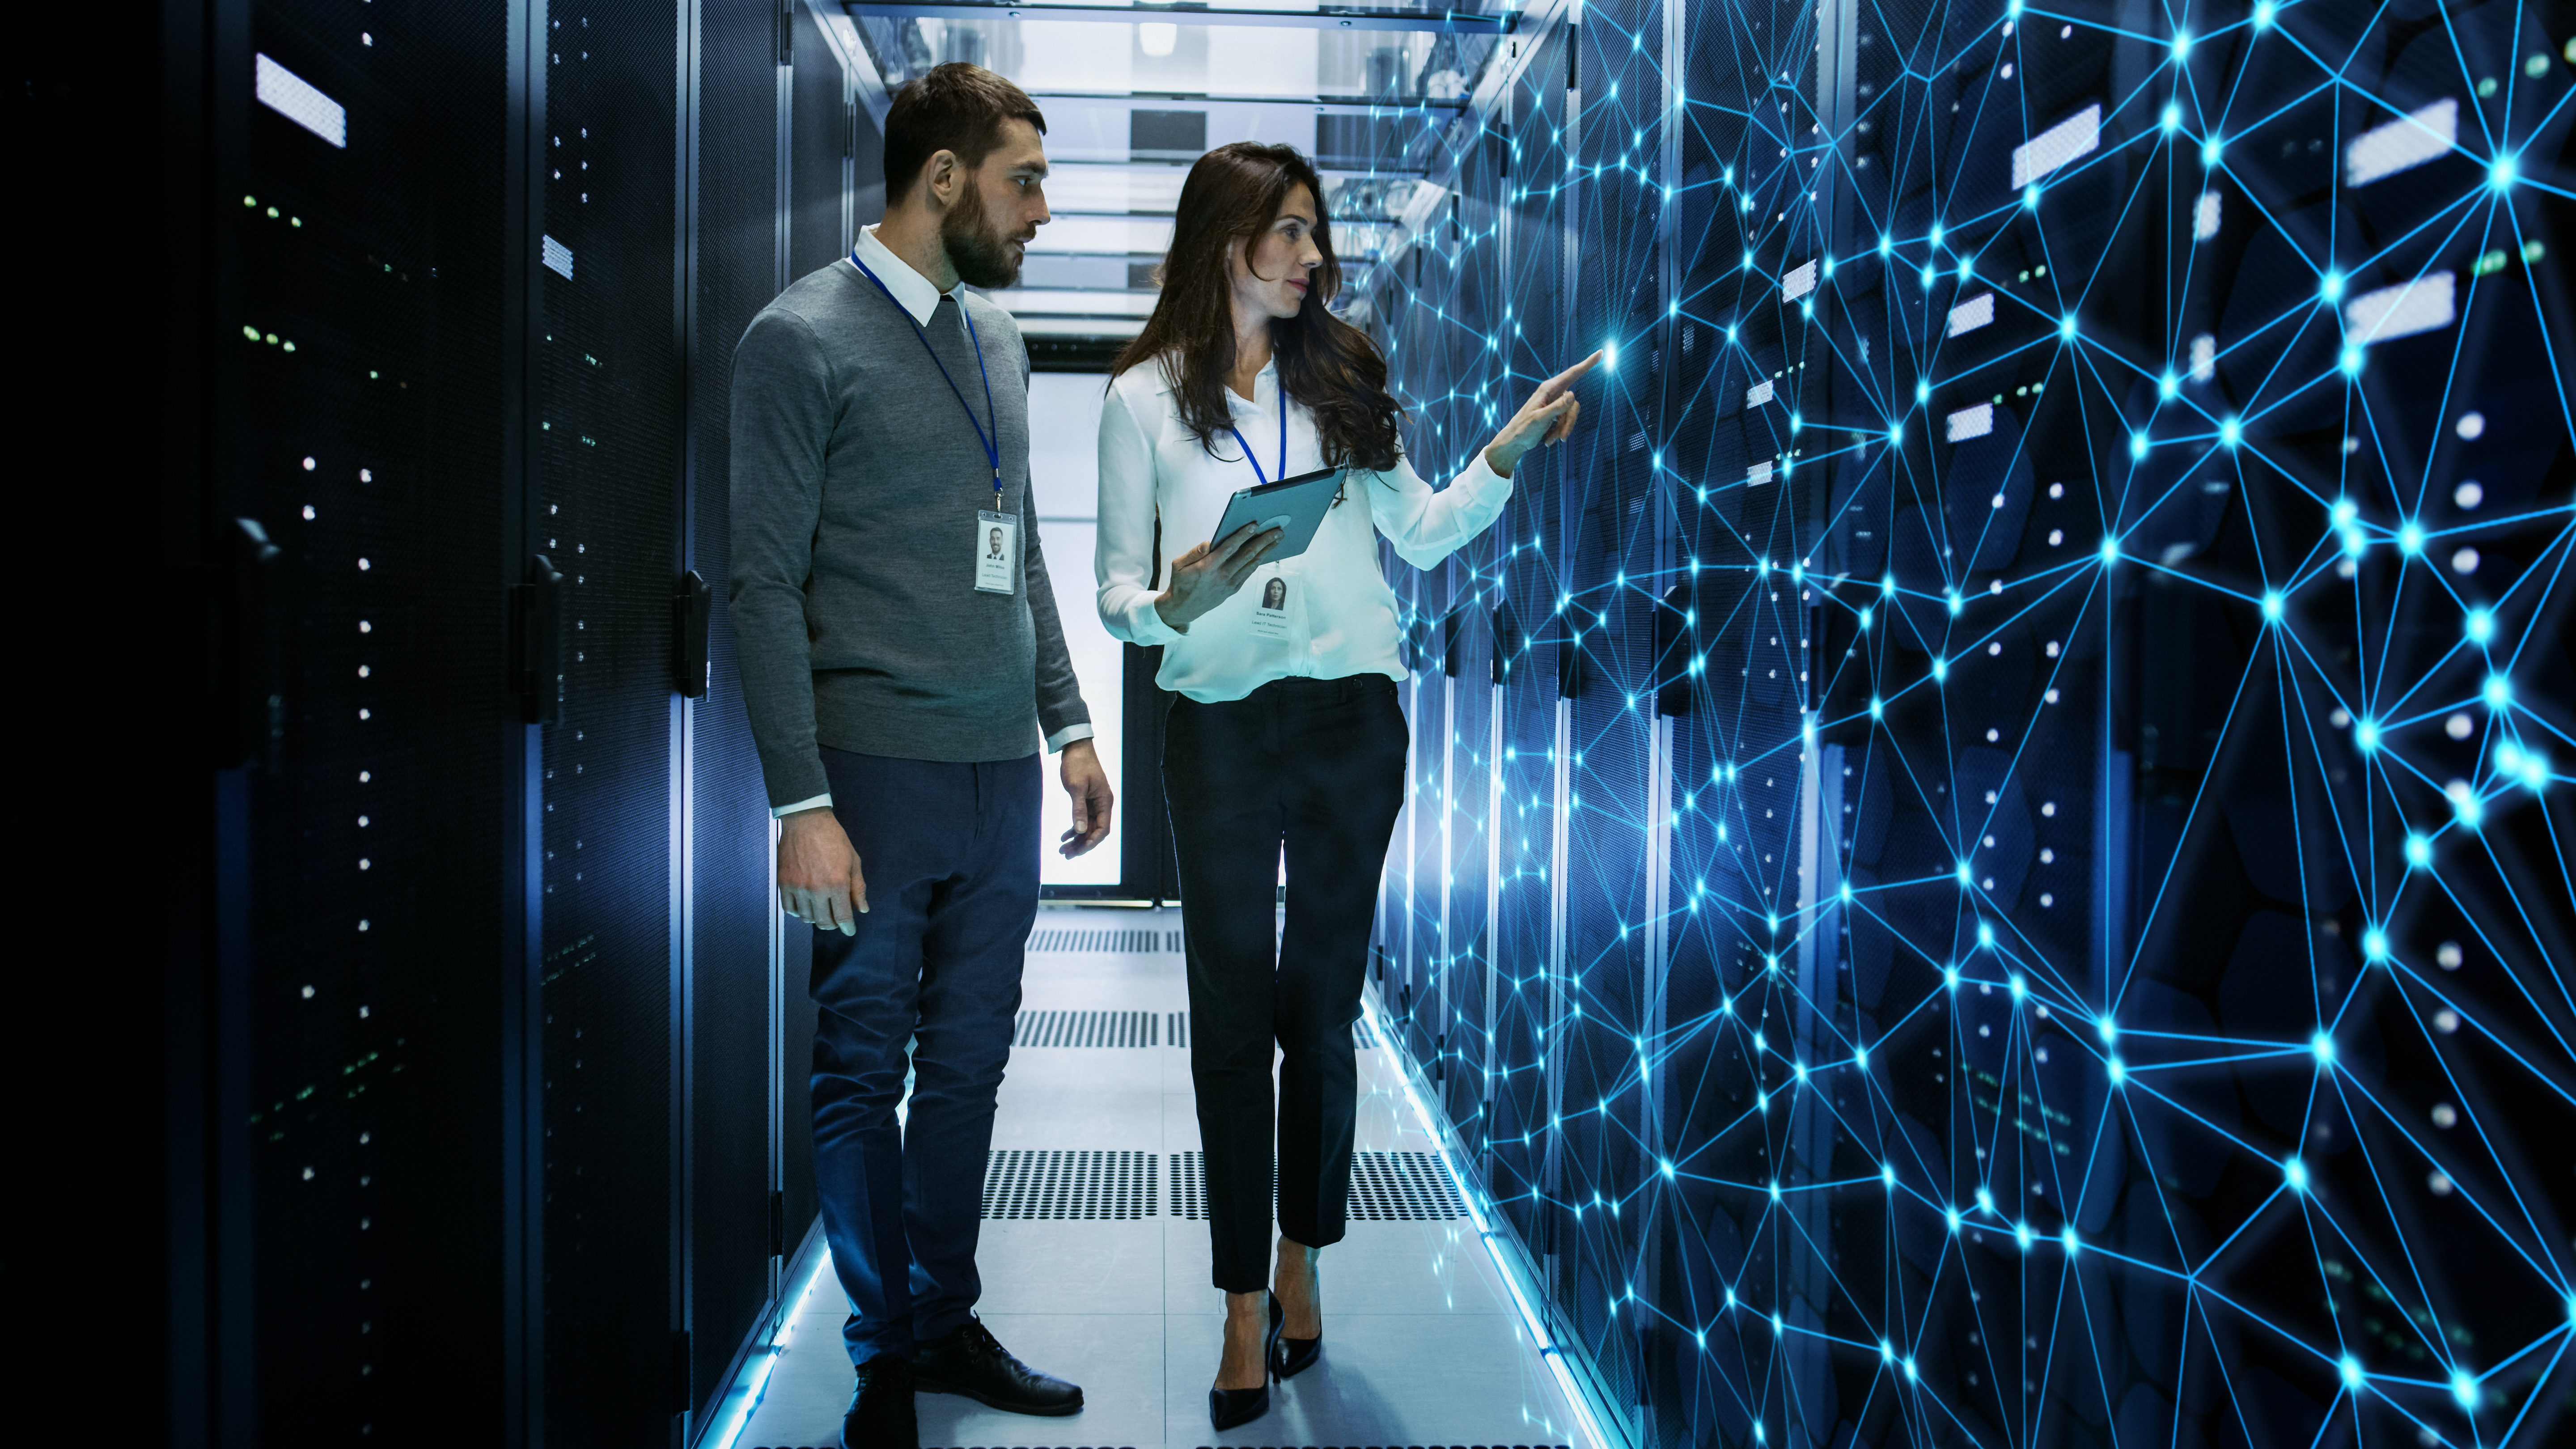 Next Generation Unified Storage from Dell Technologies